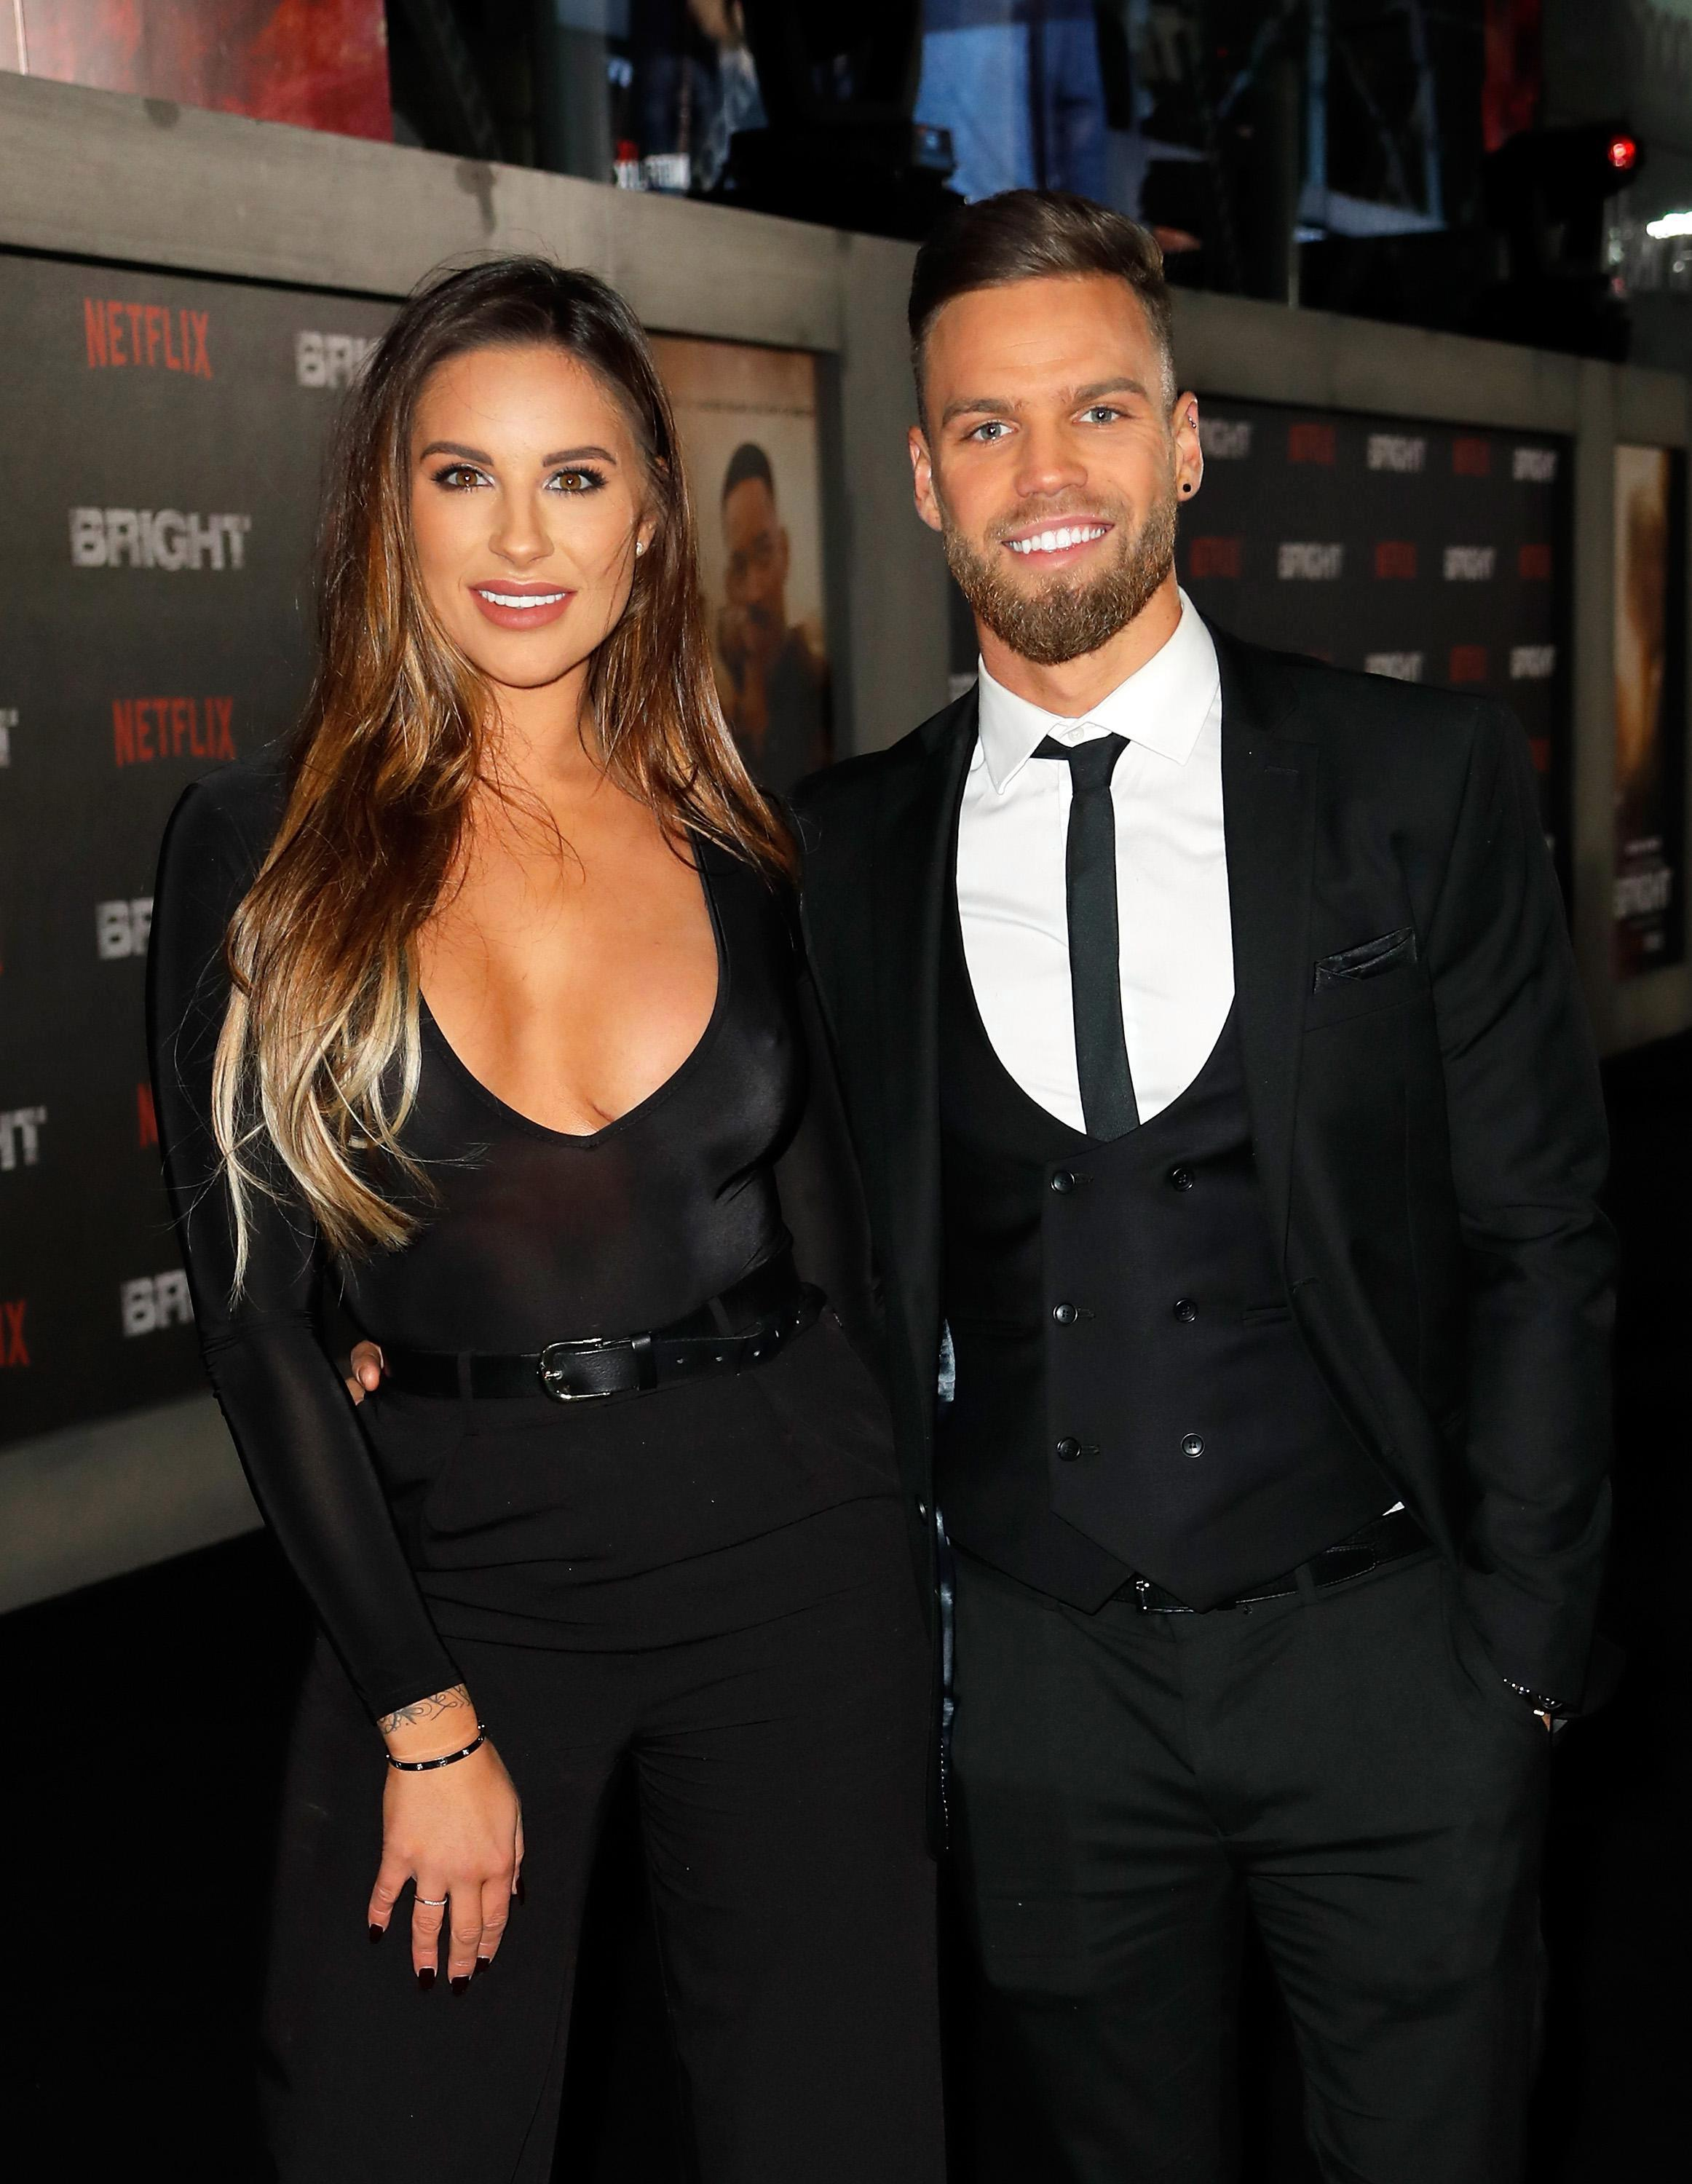 Love Island's Jessica Shears planning to start a family with Dominic Lever straight after their wedding in Greece this summer